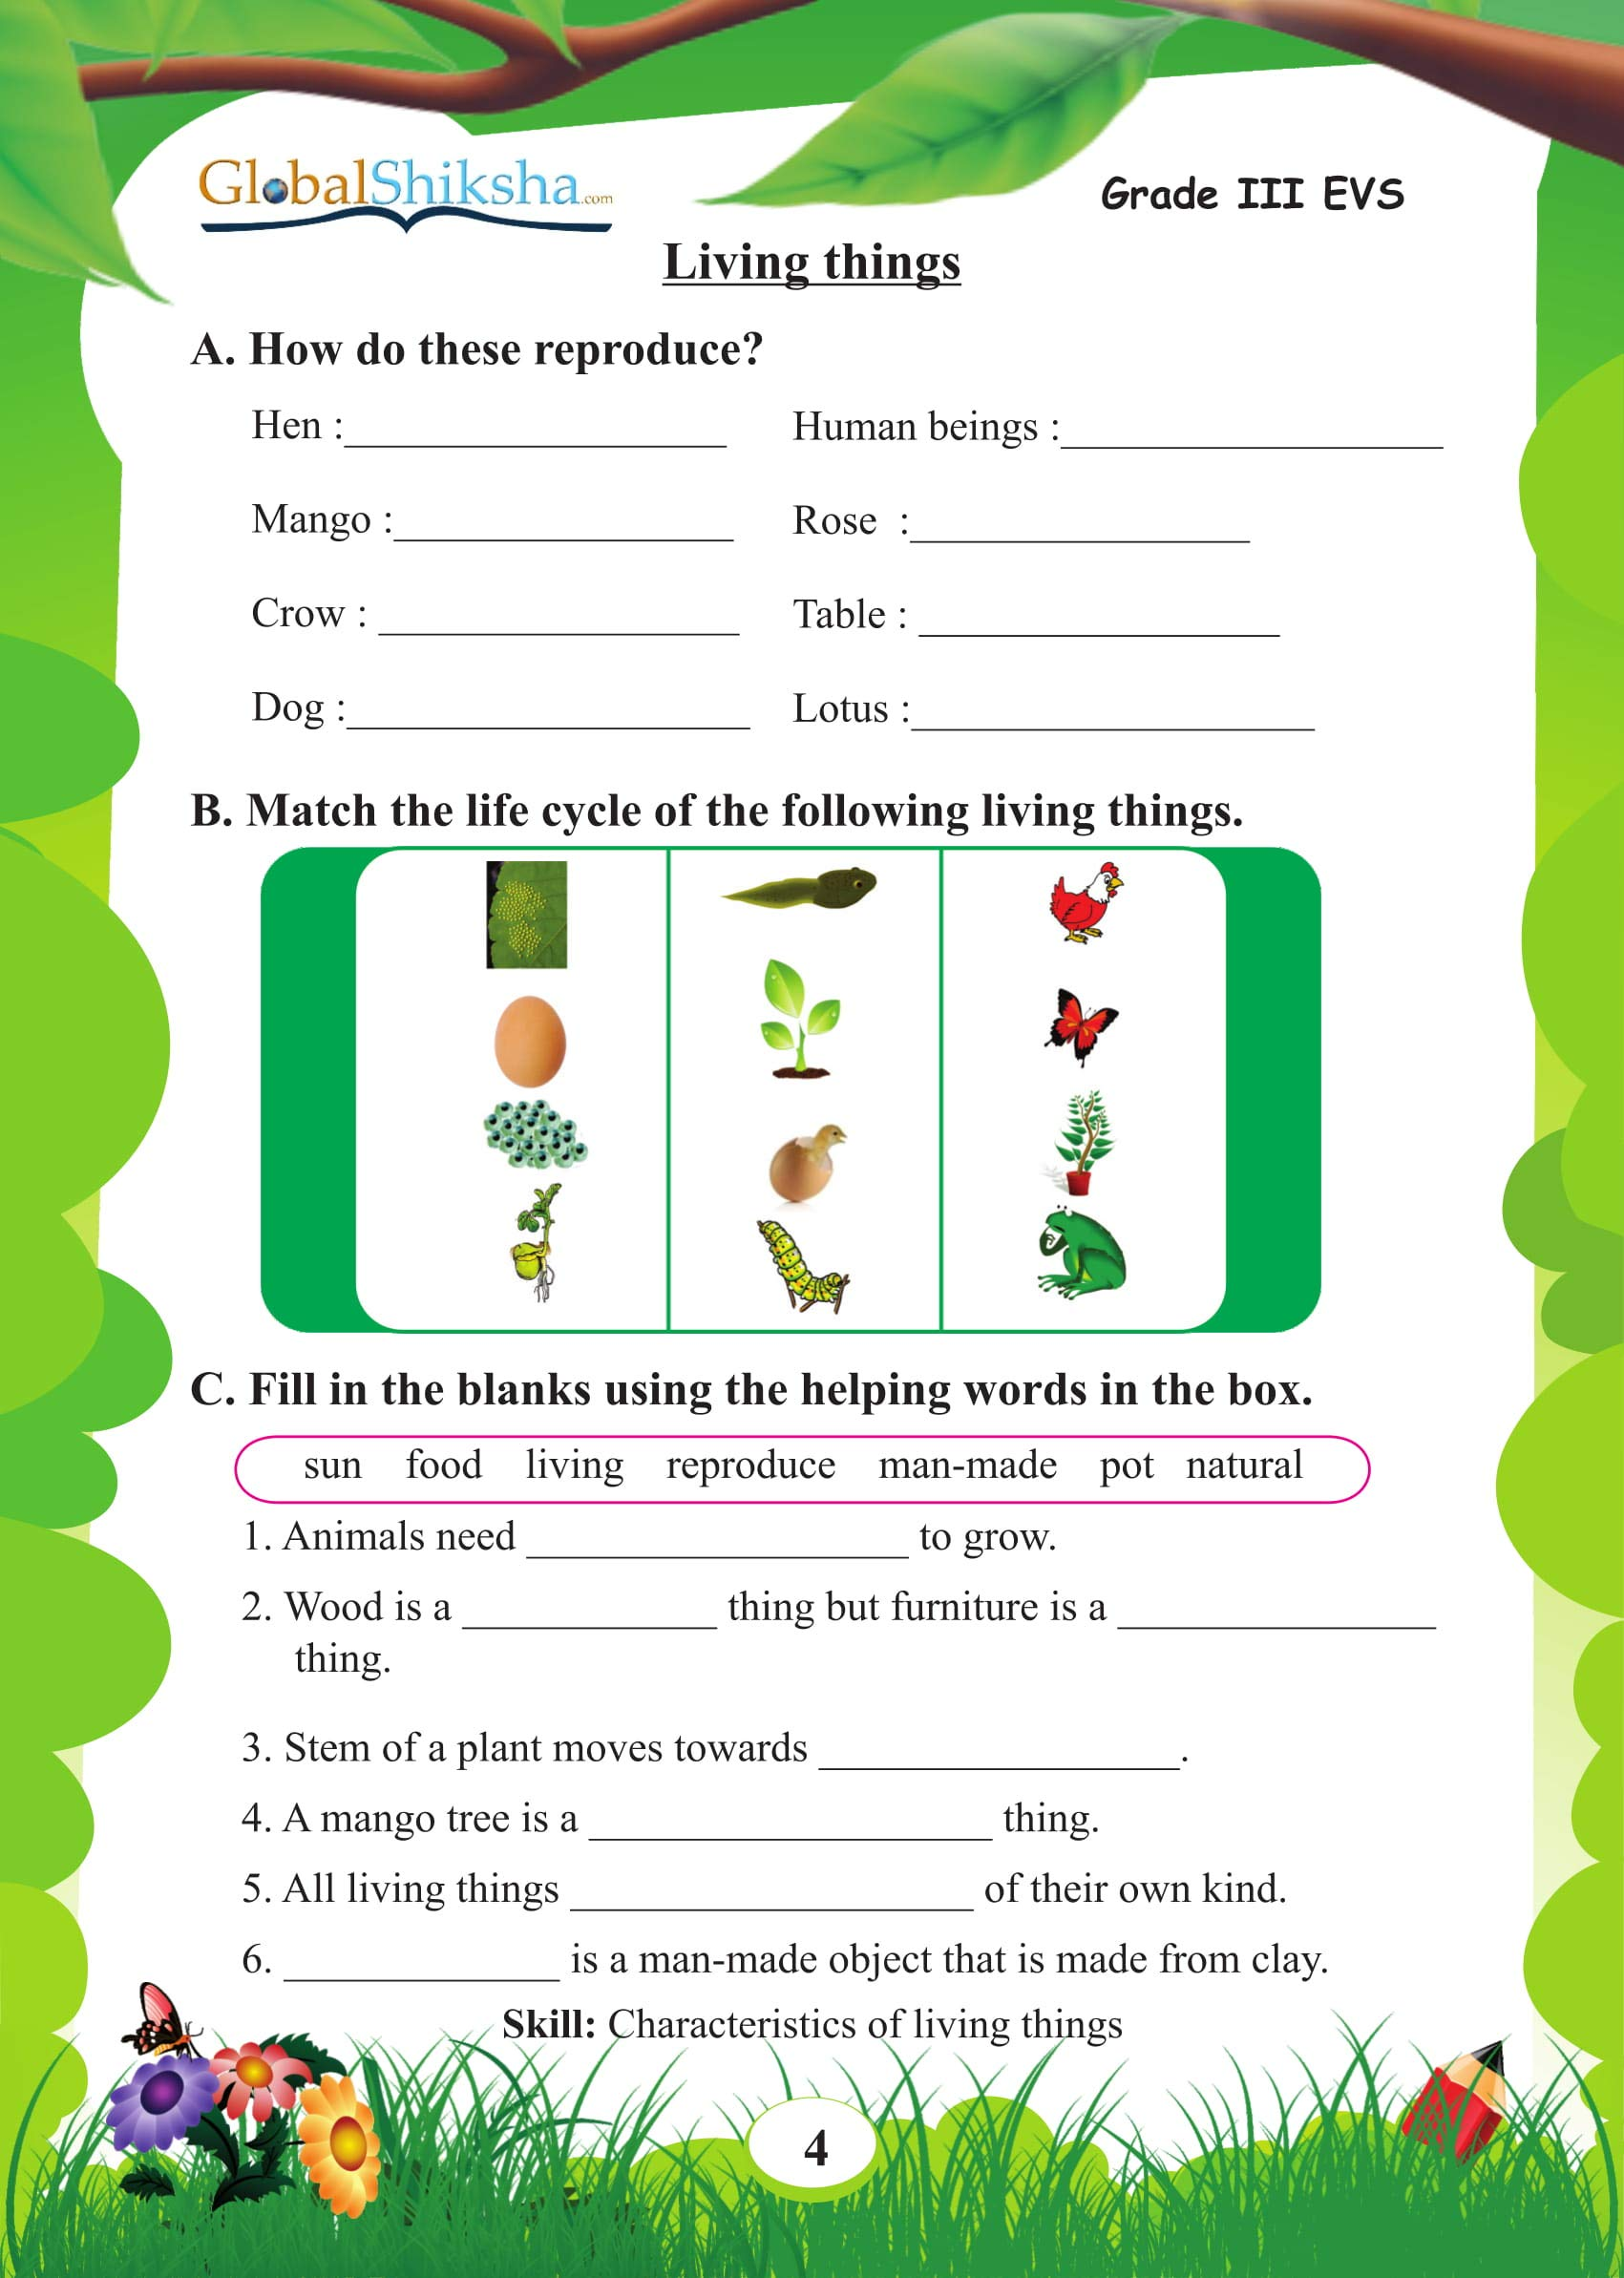 Buy GlobalShiksha EVS Worksheets For Class 3